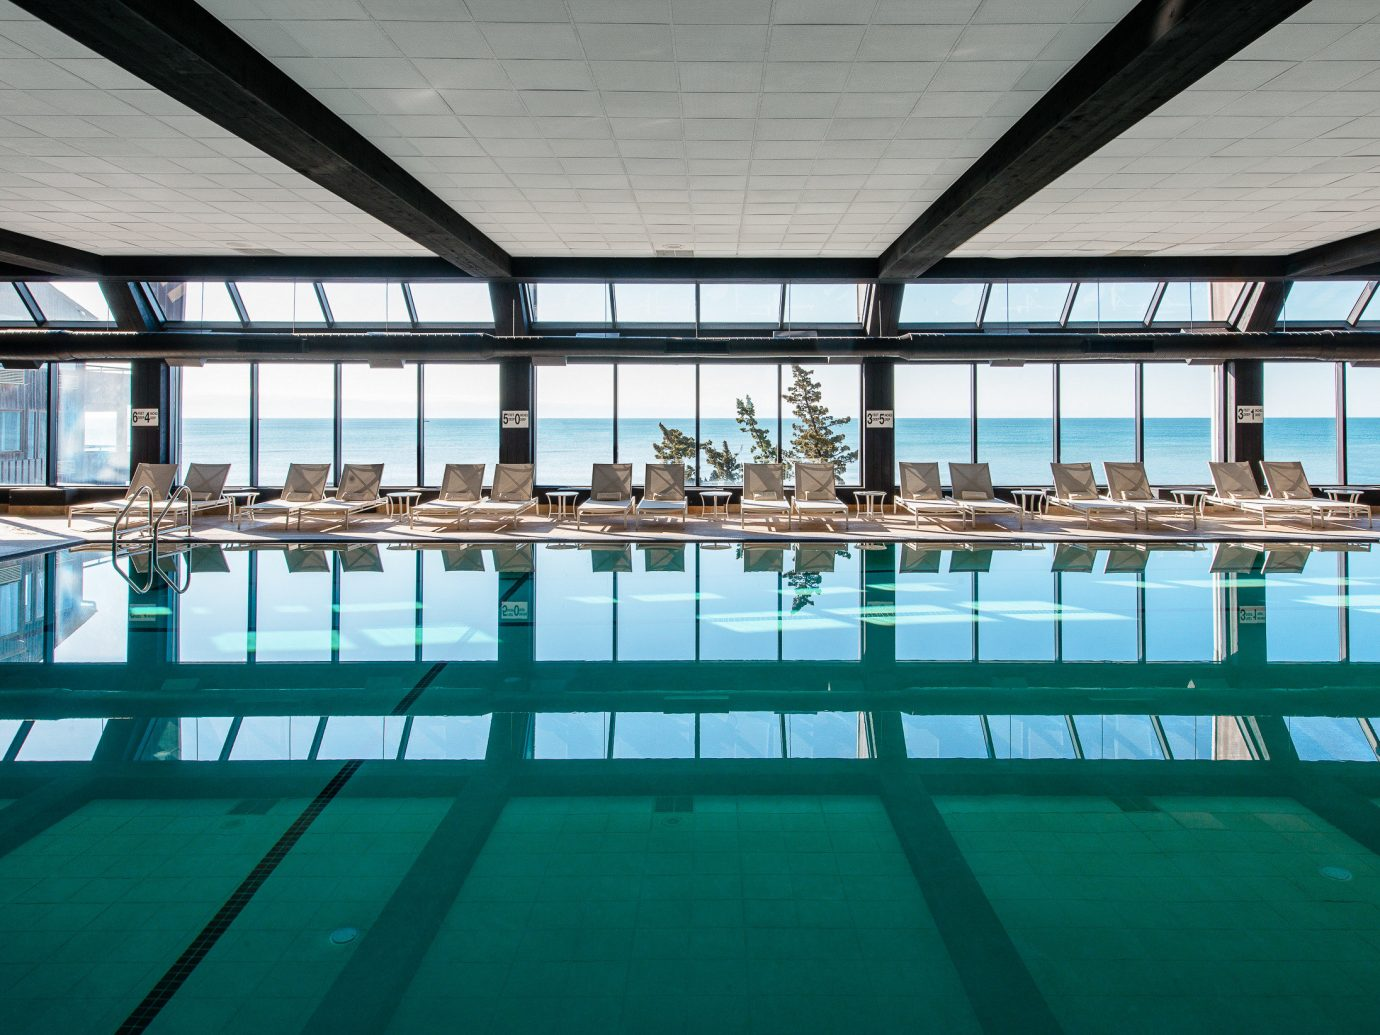 Beach South Fork The Hamptons building indoor green water ceiling swimming pool leisure reflection leisure centre Architecture platform daylighting area resort town condominium Resort amenity court walkway roof